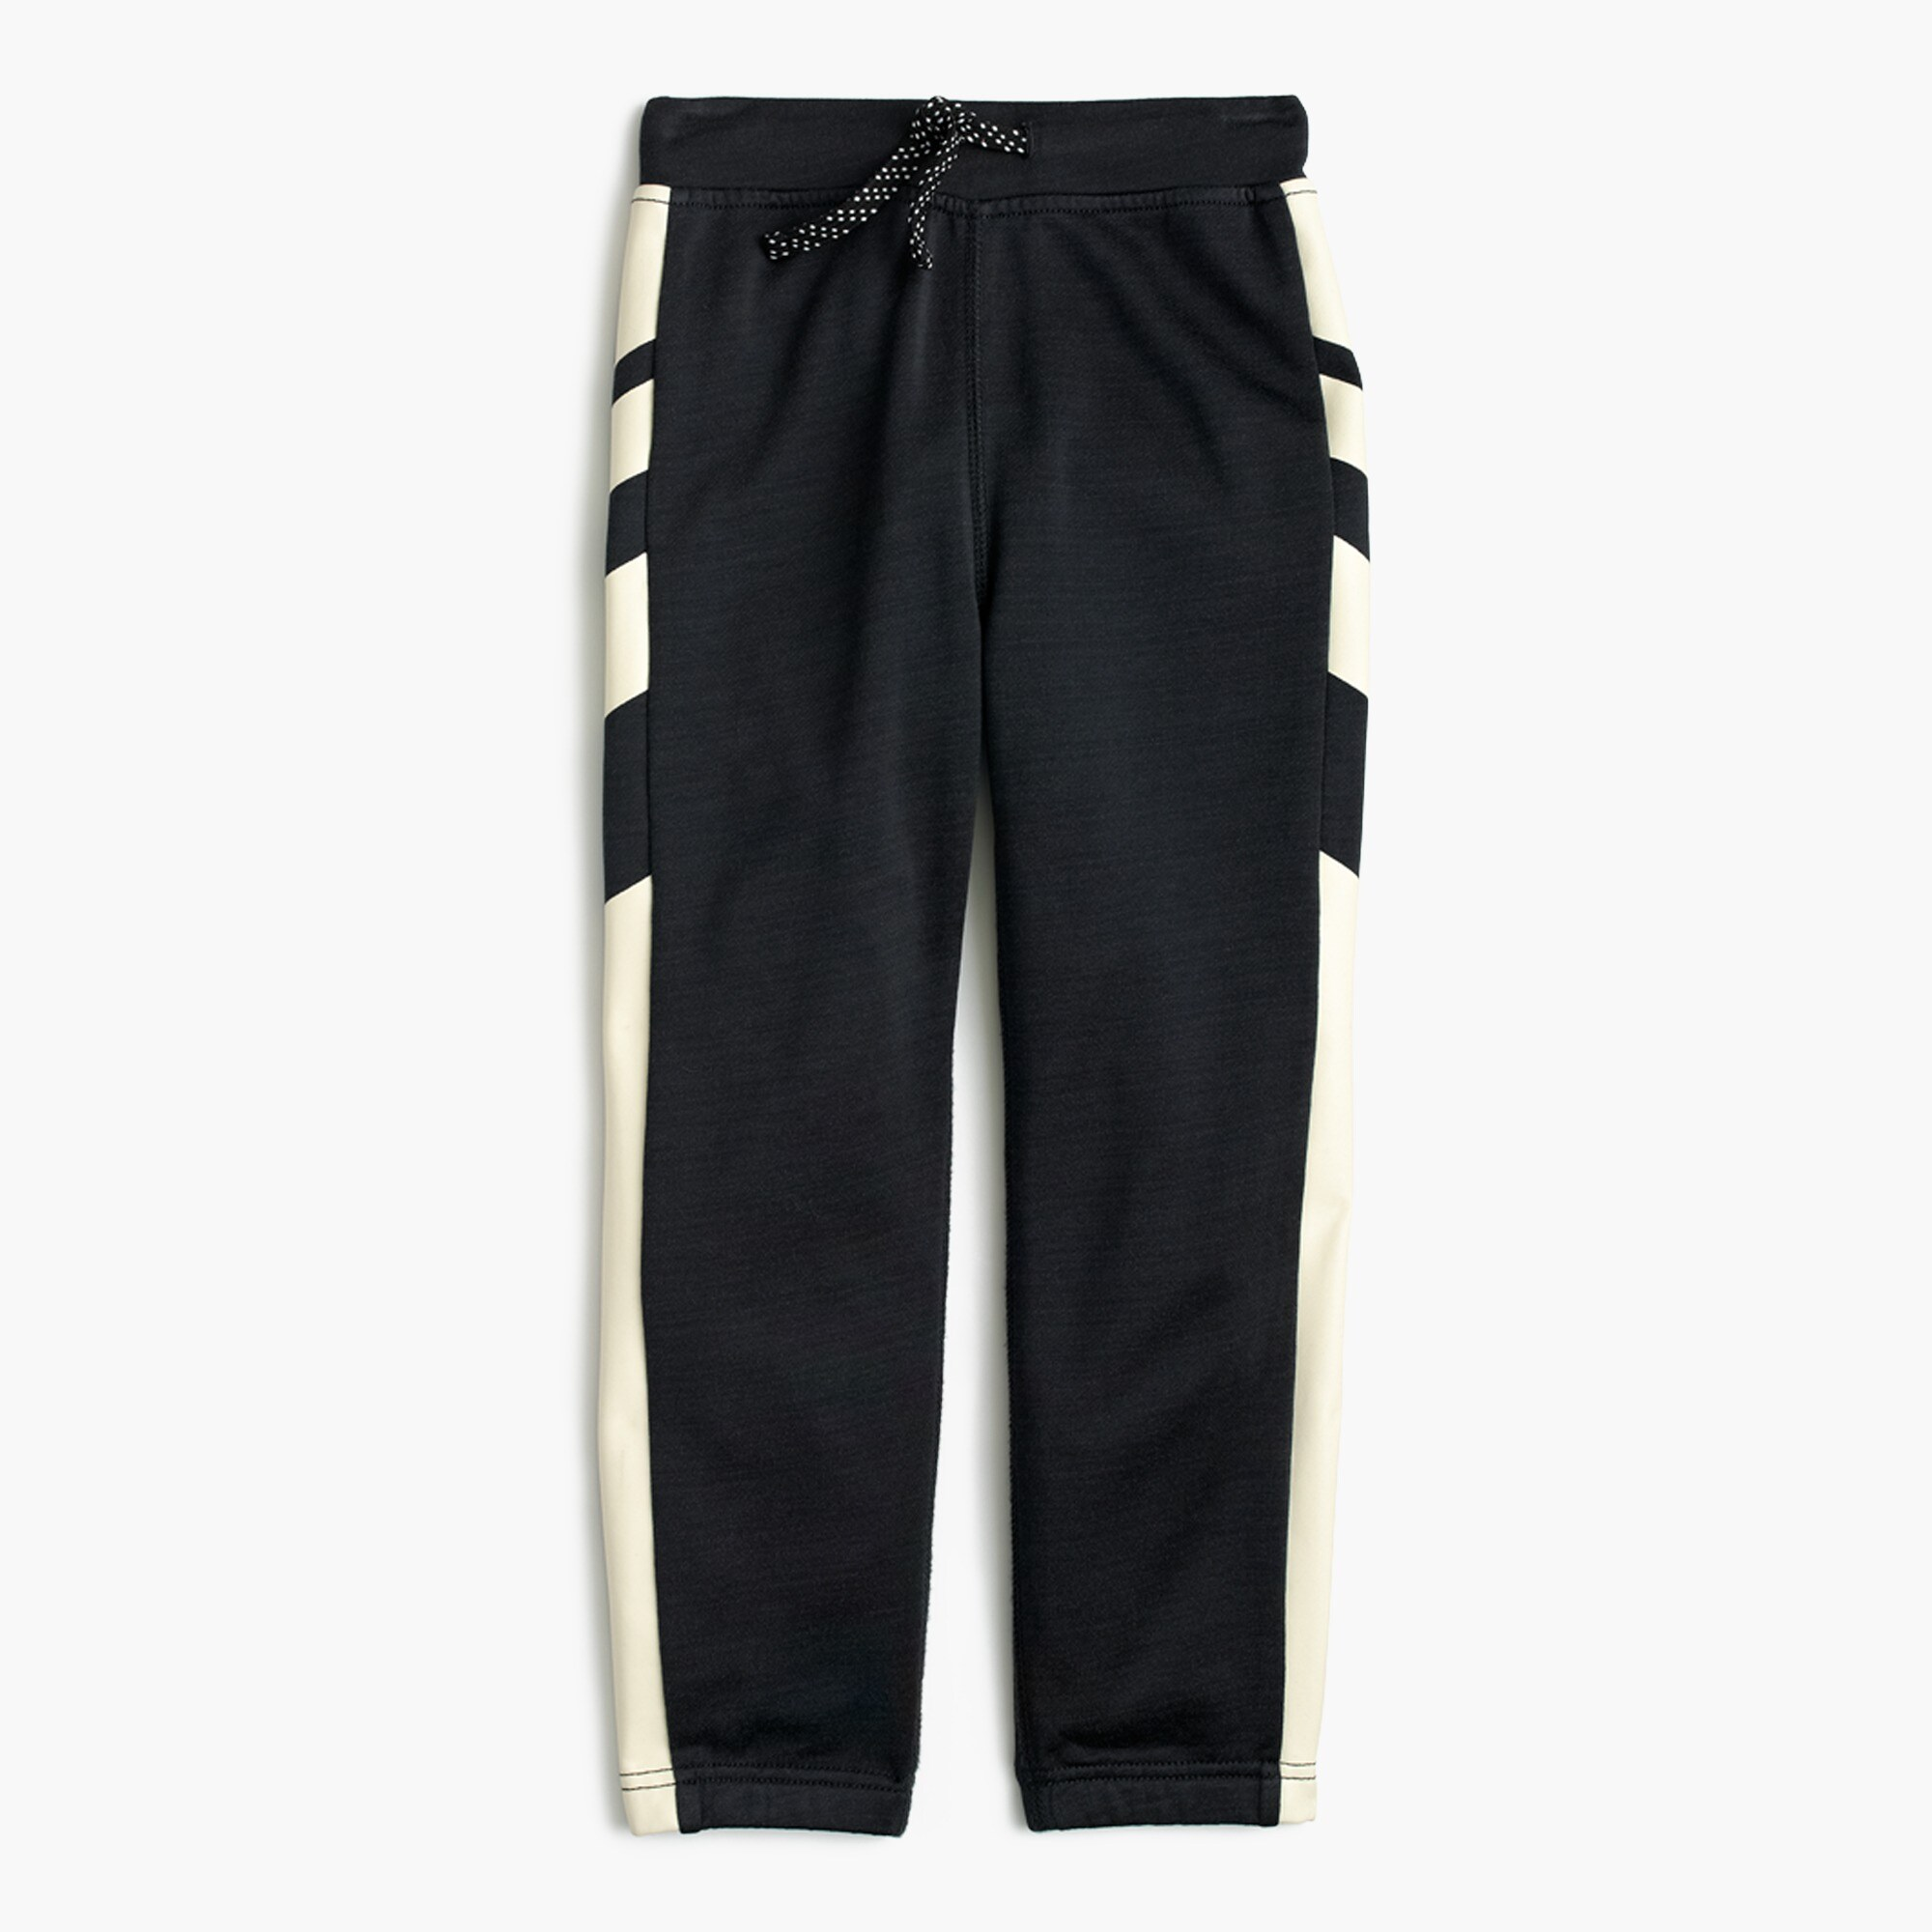 Image 1 for Boys' glow-in-the-dark racing-stripe sweatpant in classic fit